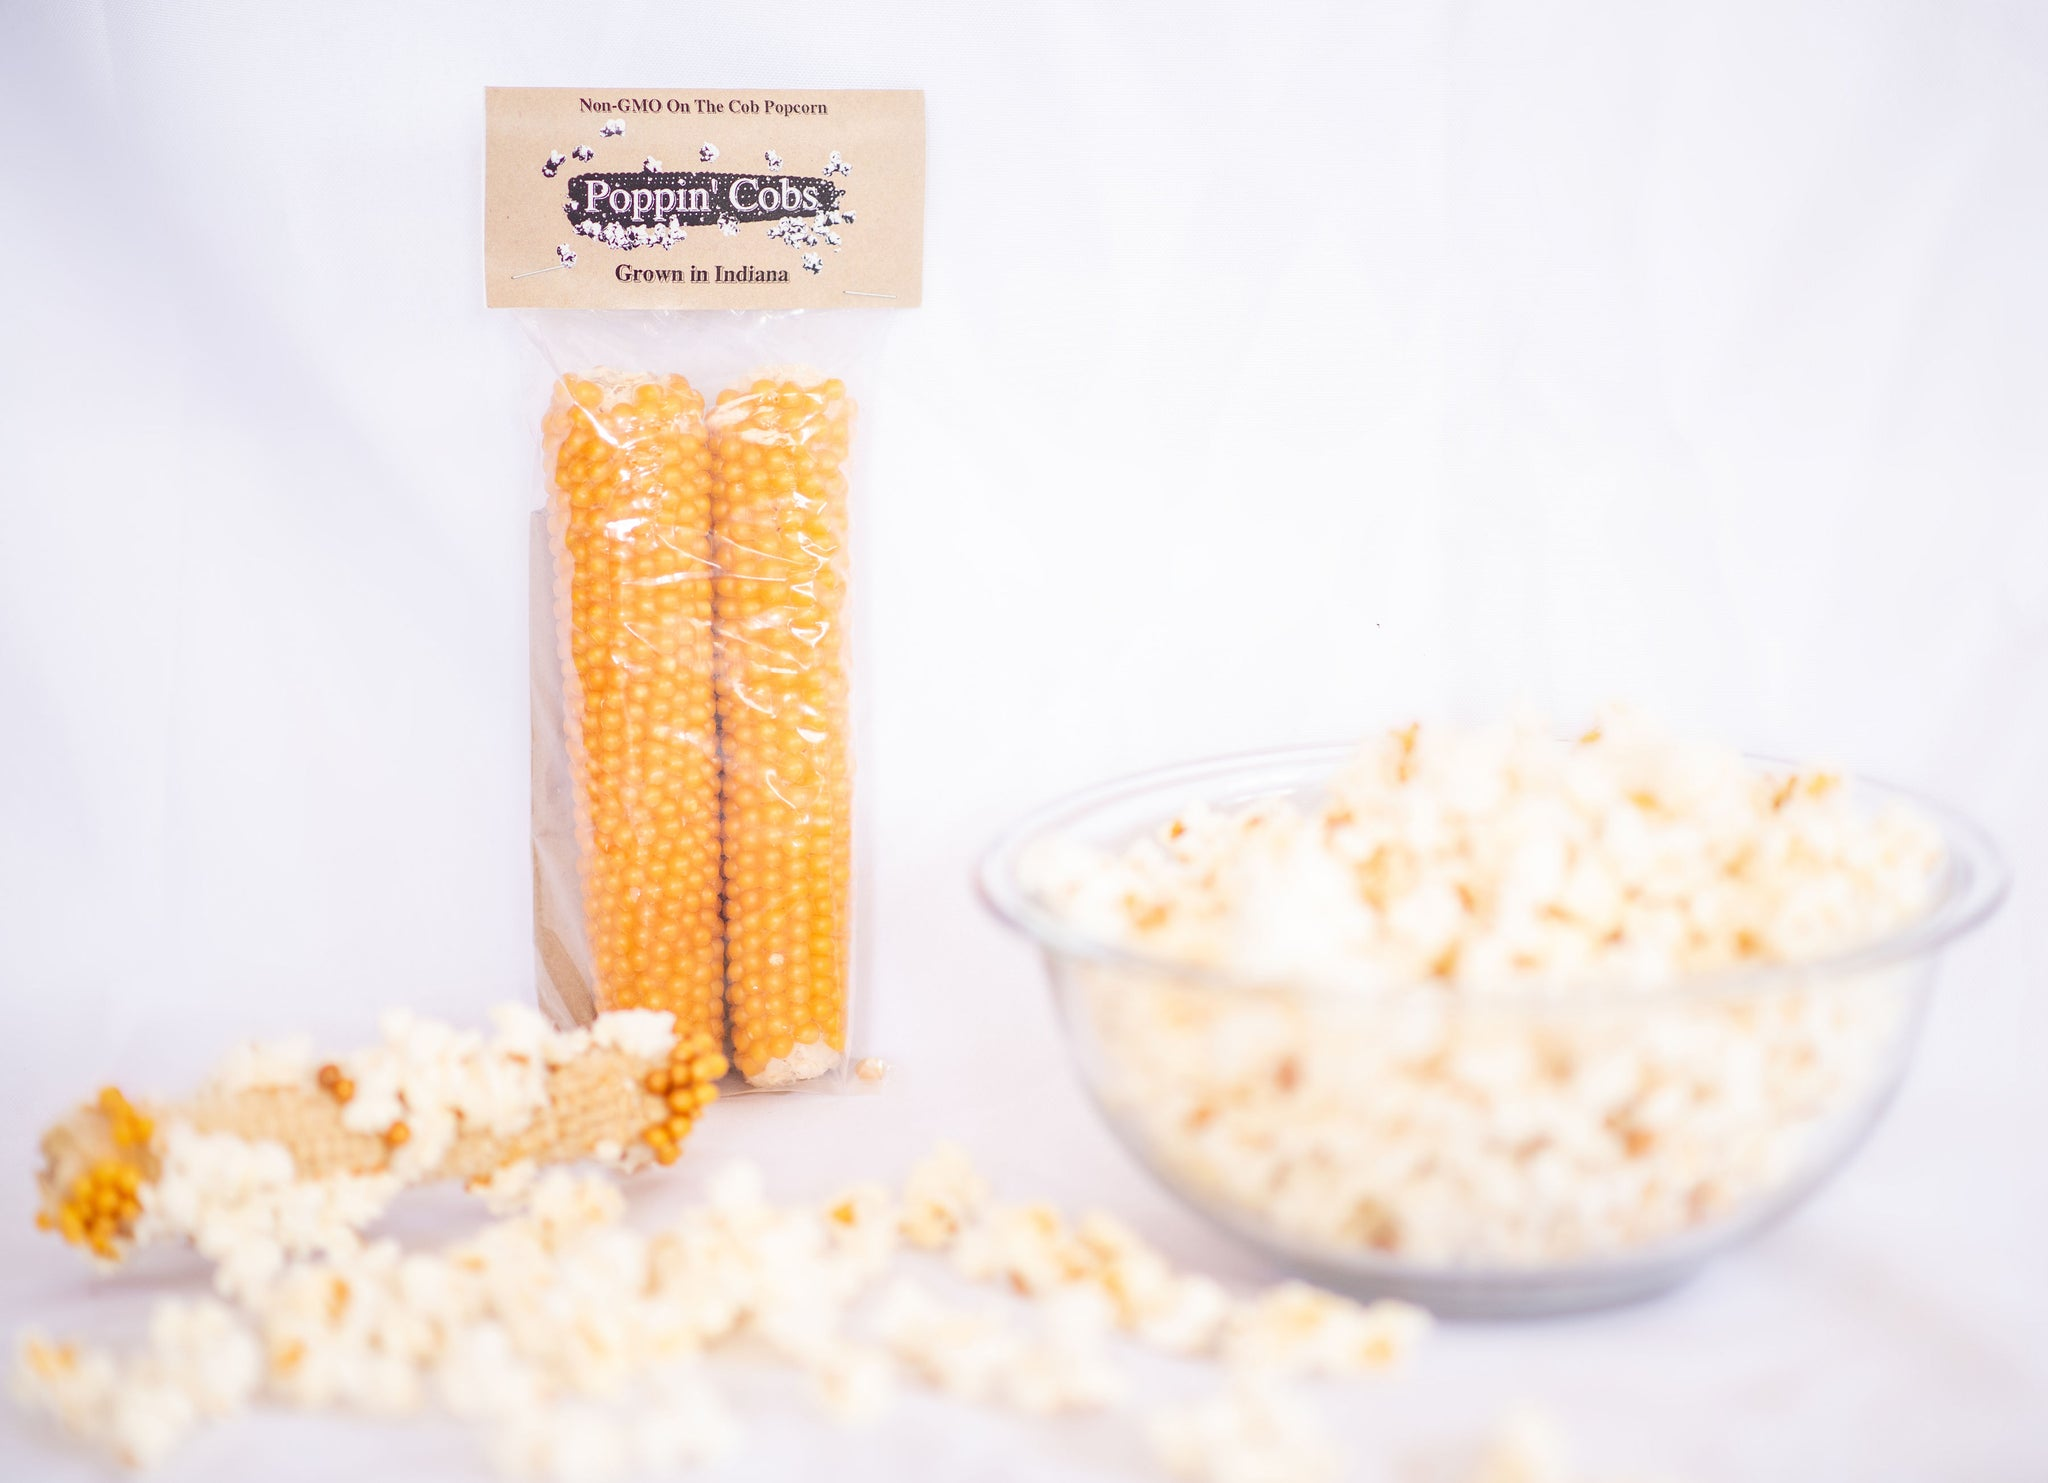 Poppin' Cobs 2 pack - Microwave Popcorn On the Cob, Gluten Free, Non-GMO